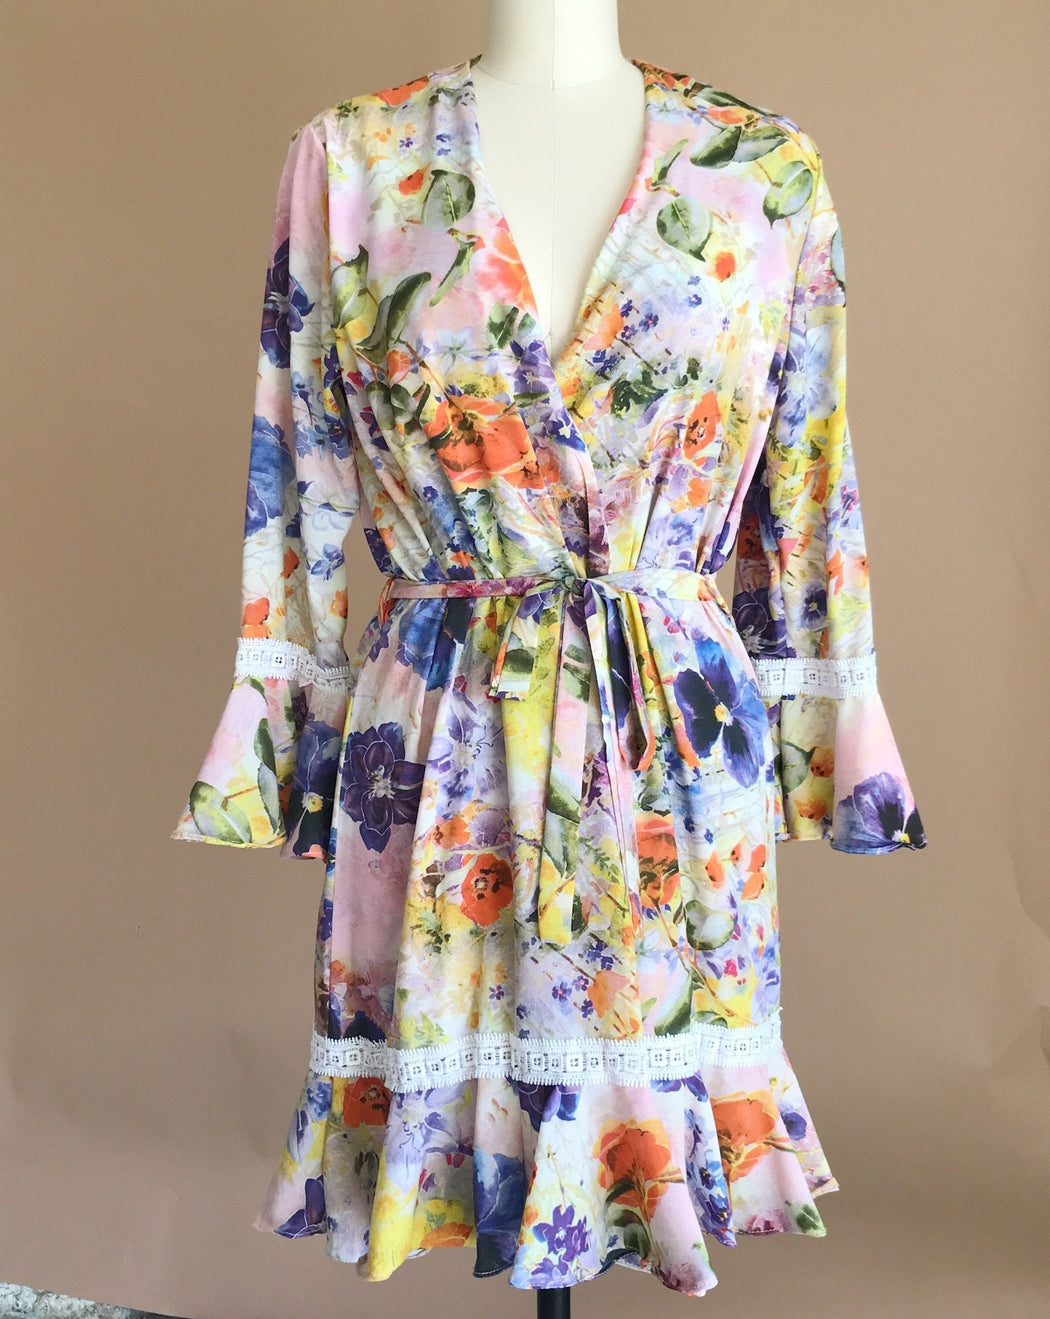 Wildflower Floral Robe - Small